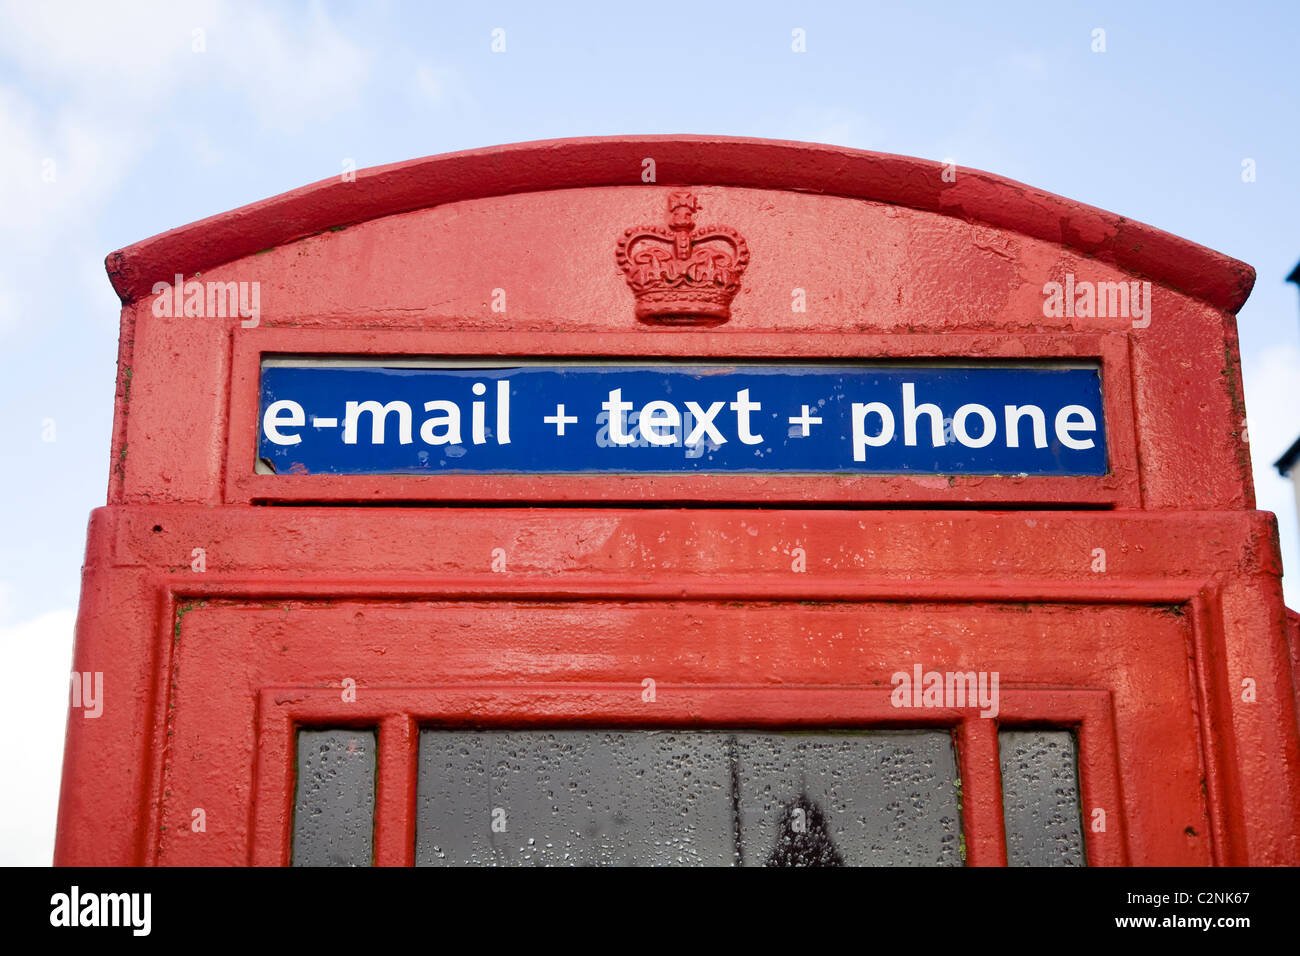 New modern services – email / e mail / text / texting from public telephone / phone in original red / call box. - Stock Image